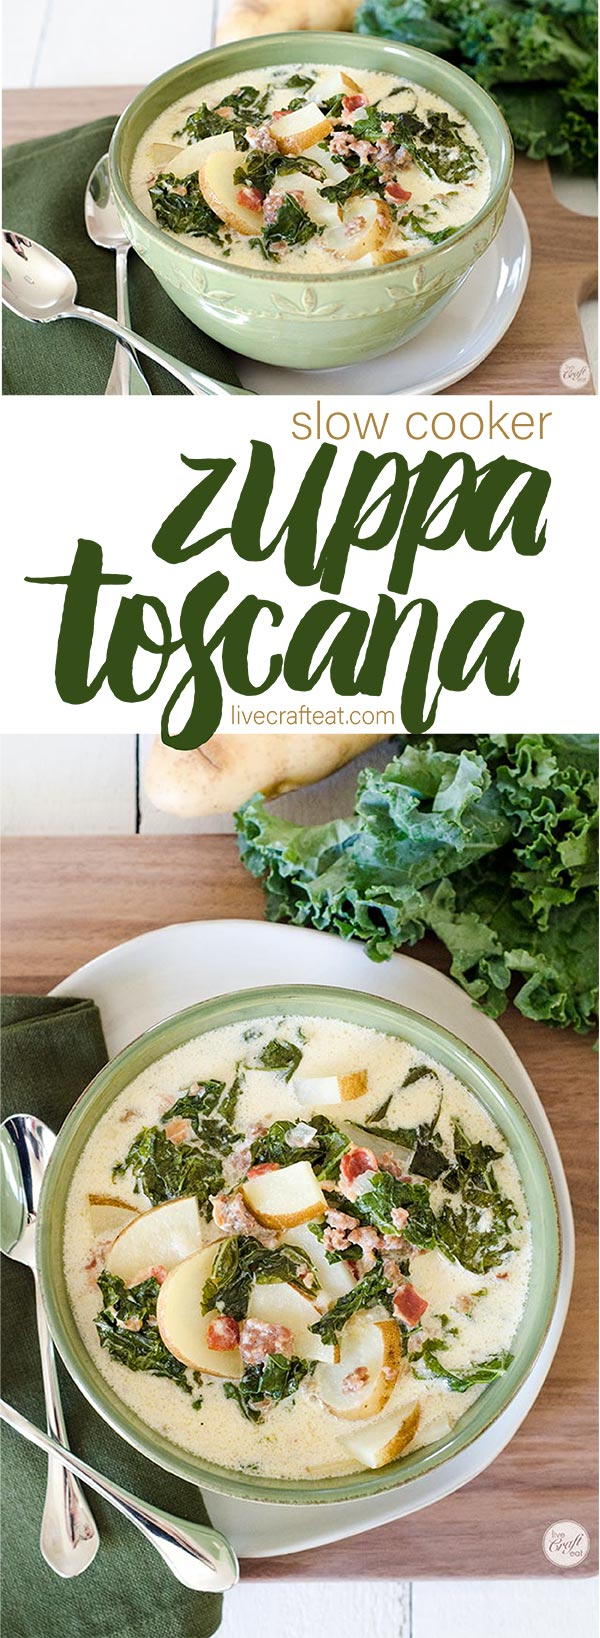 zuppa toscana :: the best soup for a cold winter day! a creamy soup with potatoes, sausage, and kale.